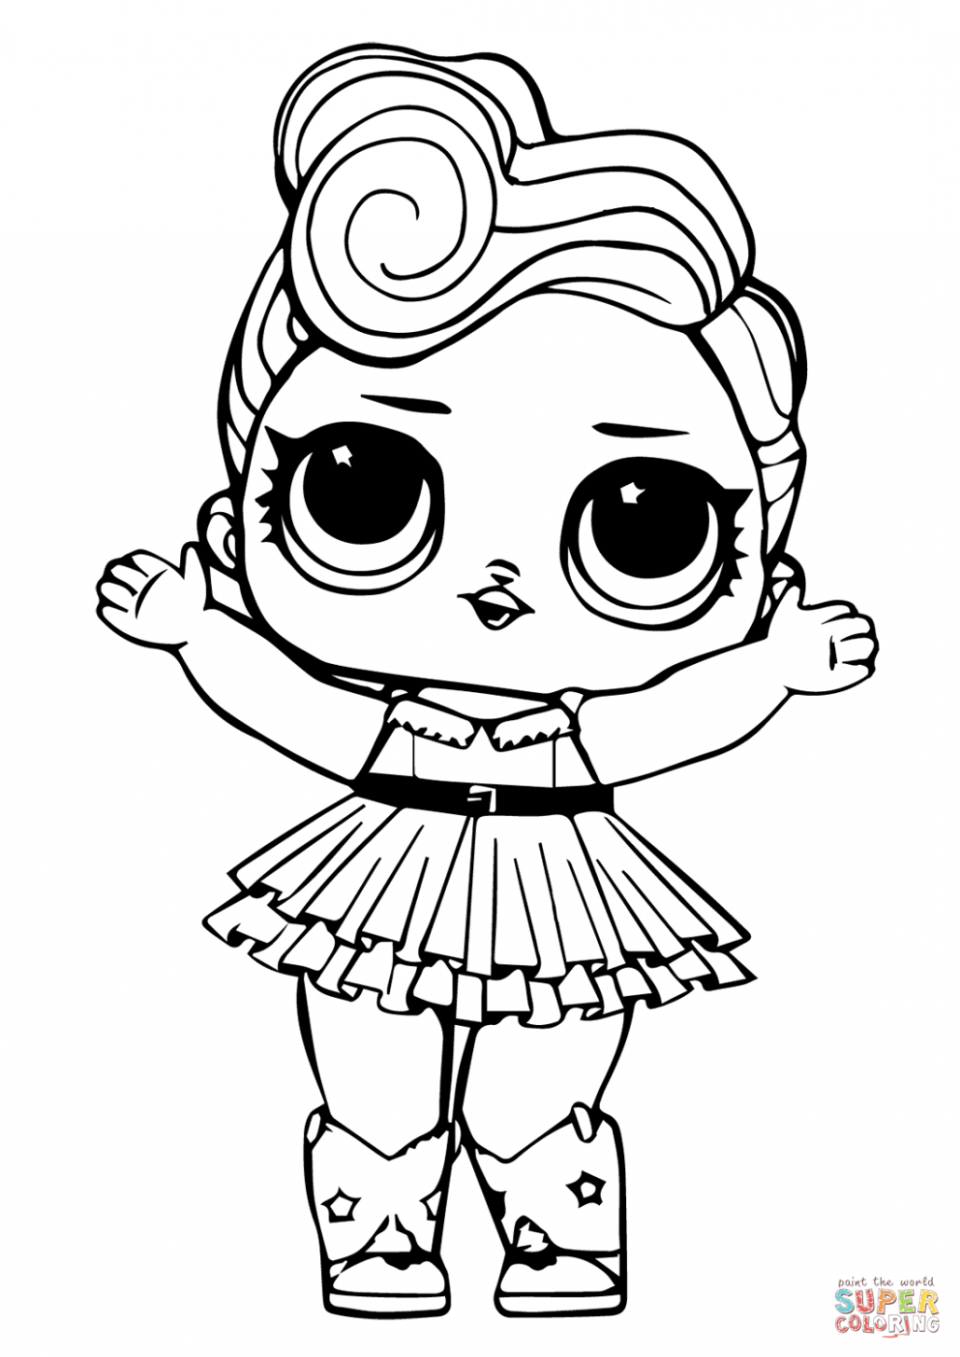 Lol Doll Coloring Pages Printable Unicorn Unicorn Coloring Pages Super Coloring Pages Star Coloring Pages